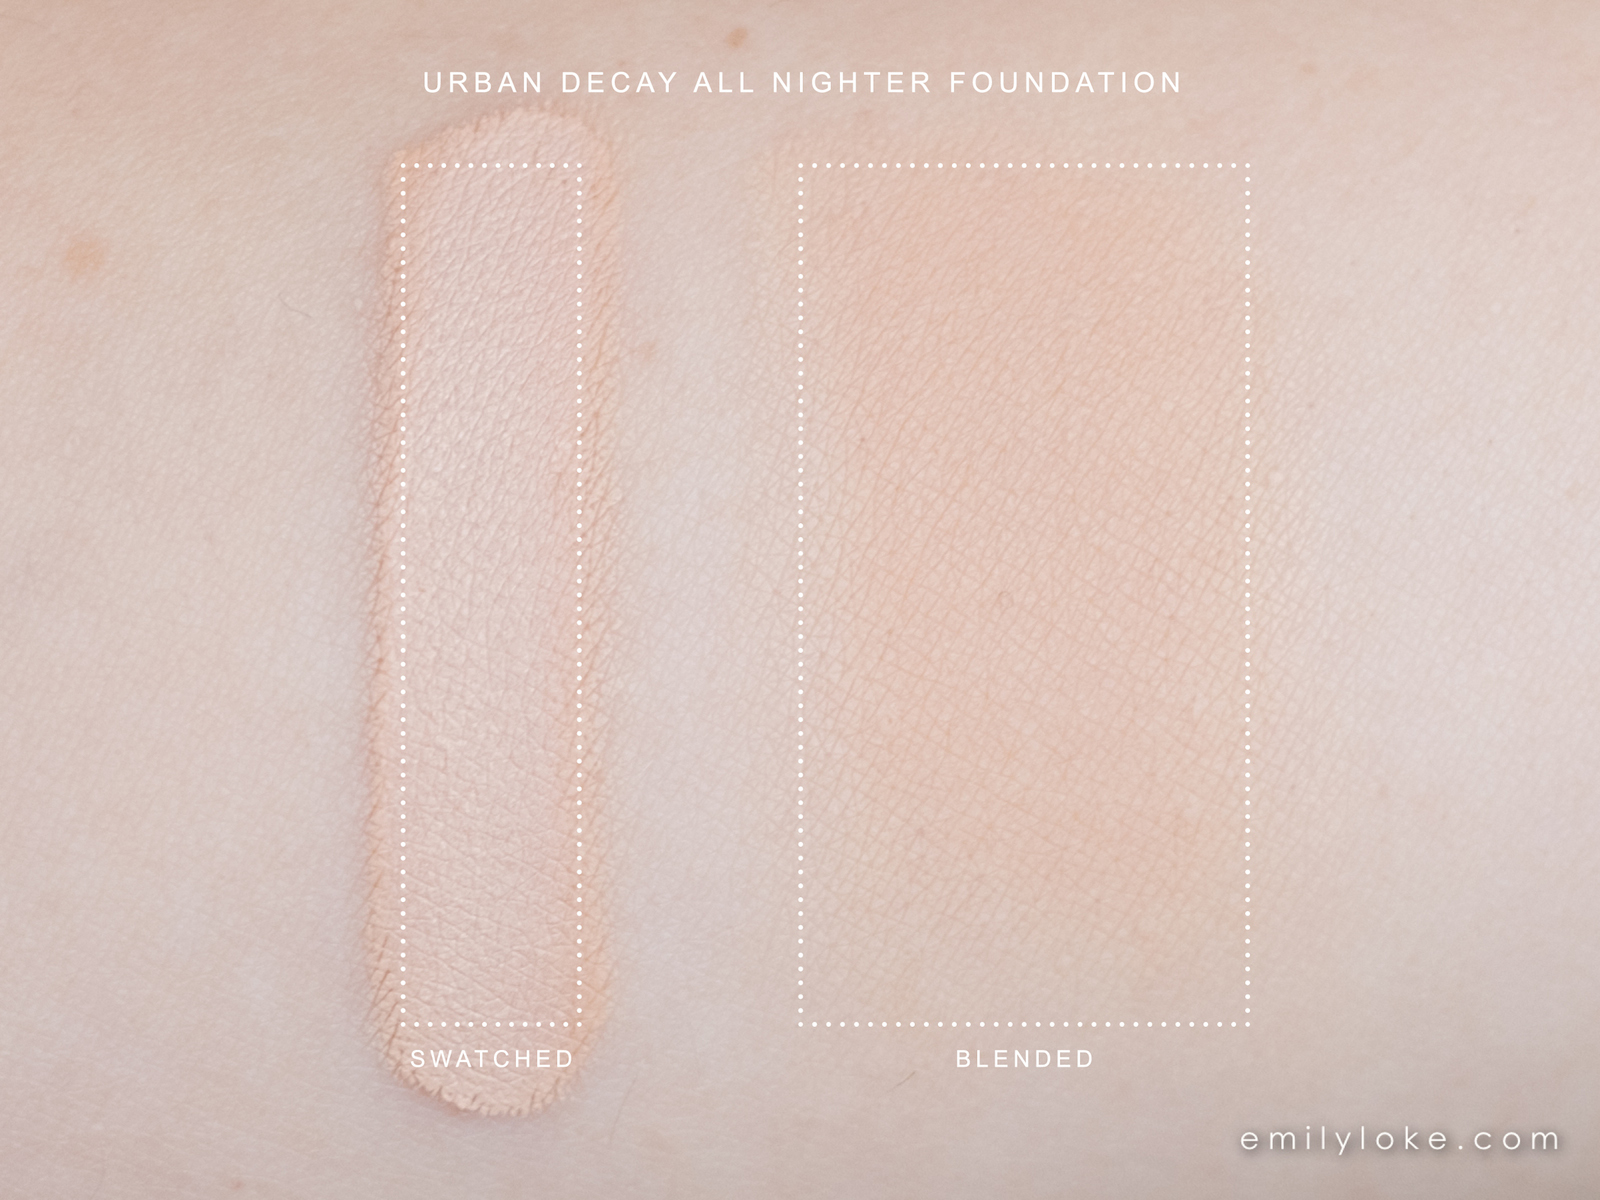 urban decay all nighter foundation swatch 1